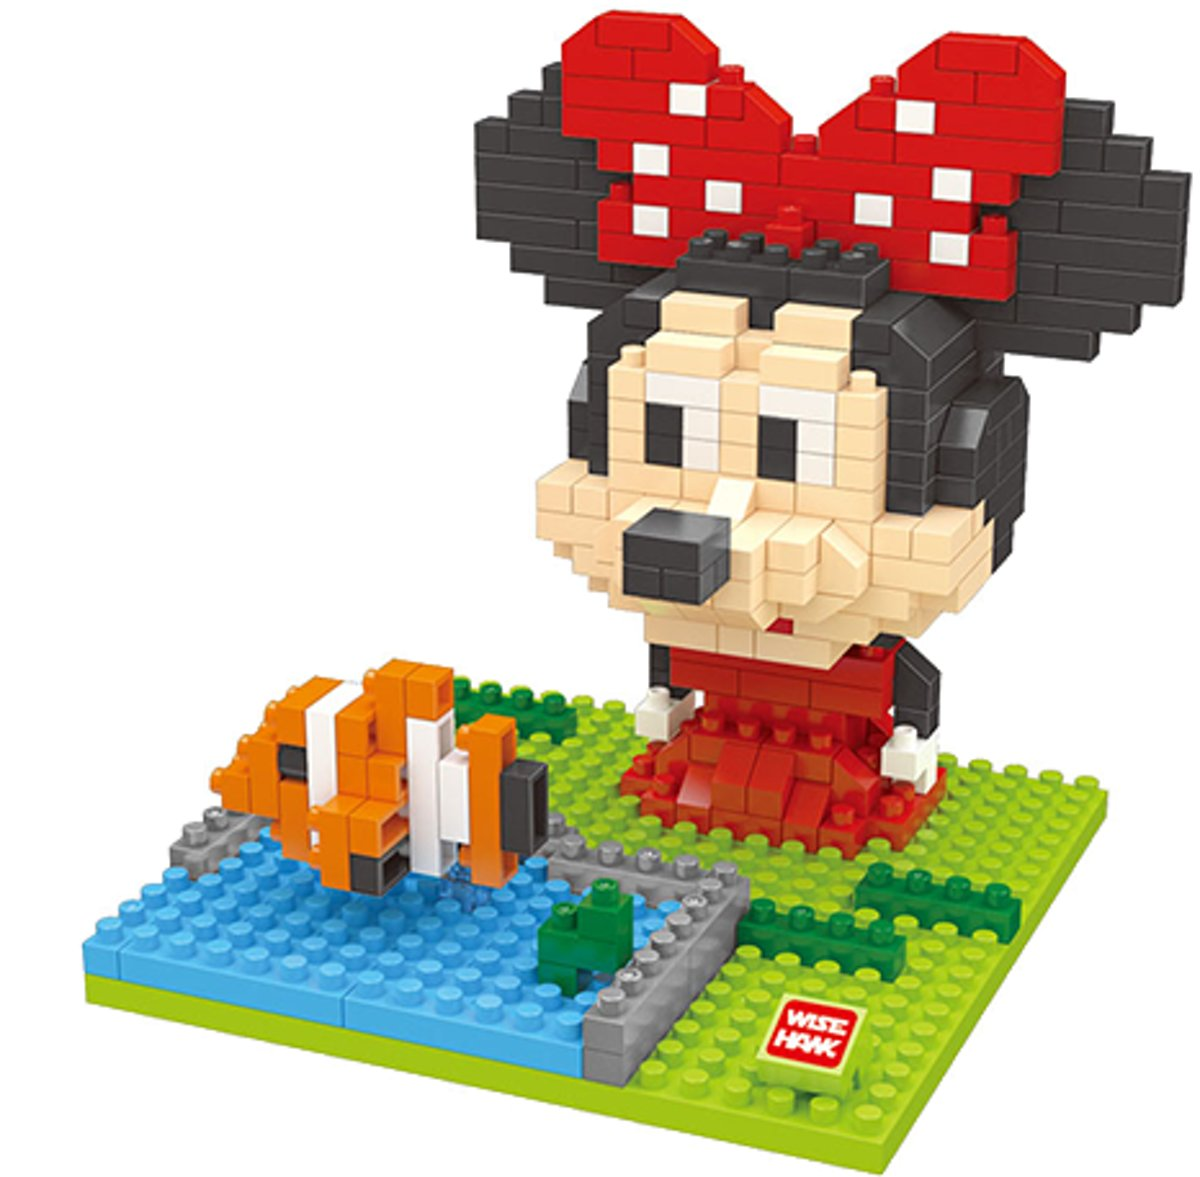 Nanoblocks Minnie Mouse met Nemo - Wise hawk